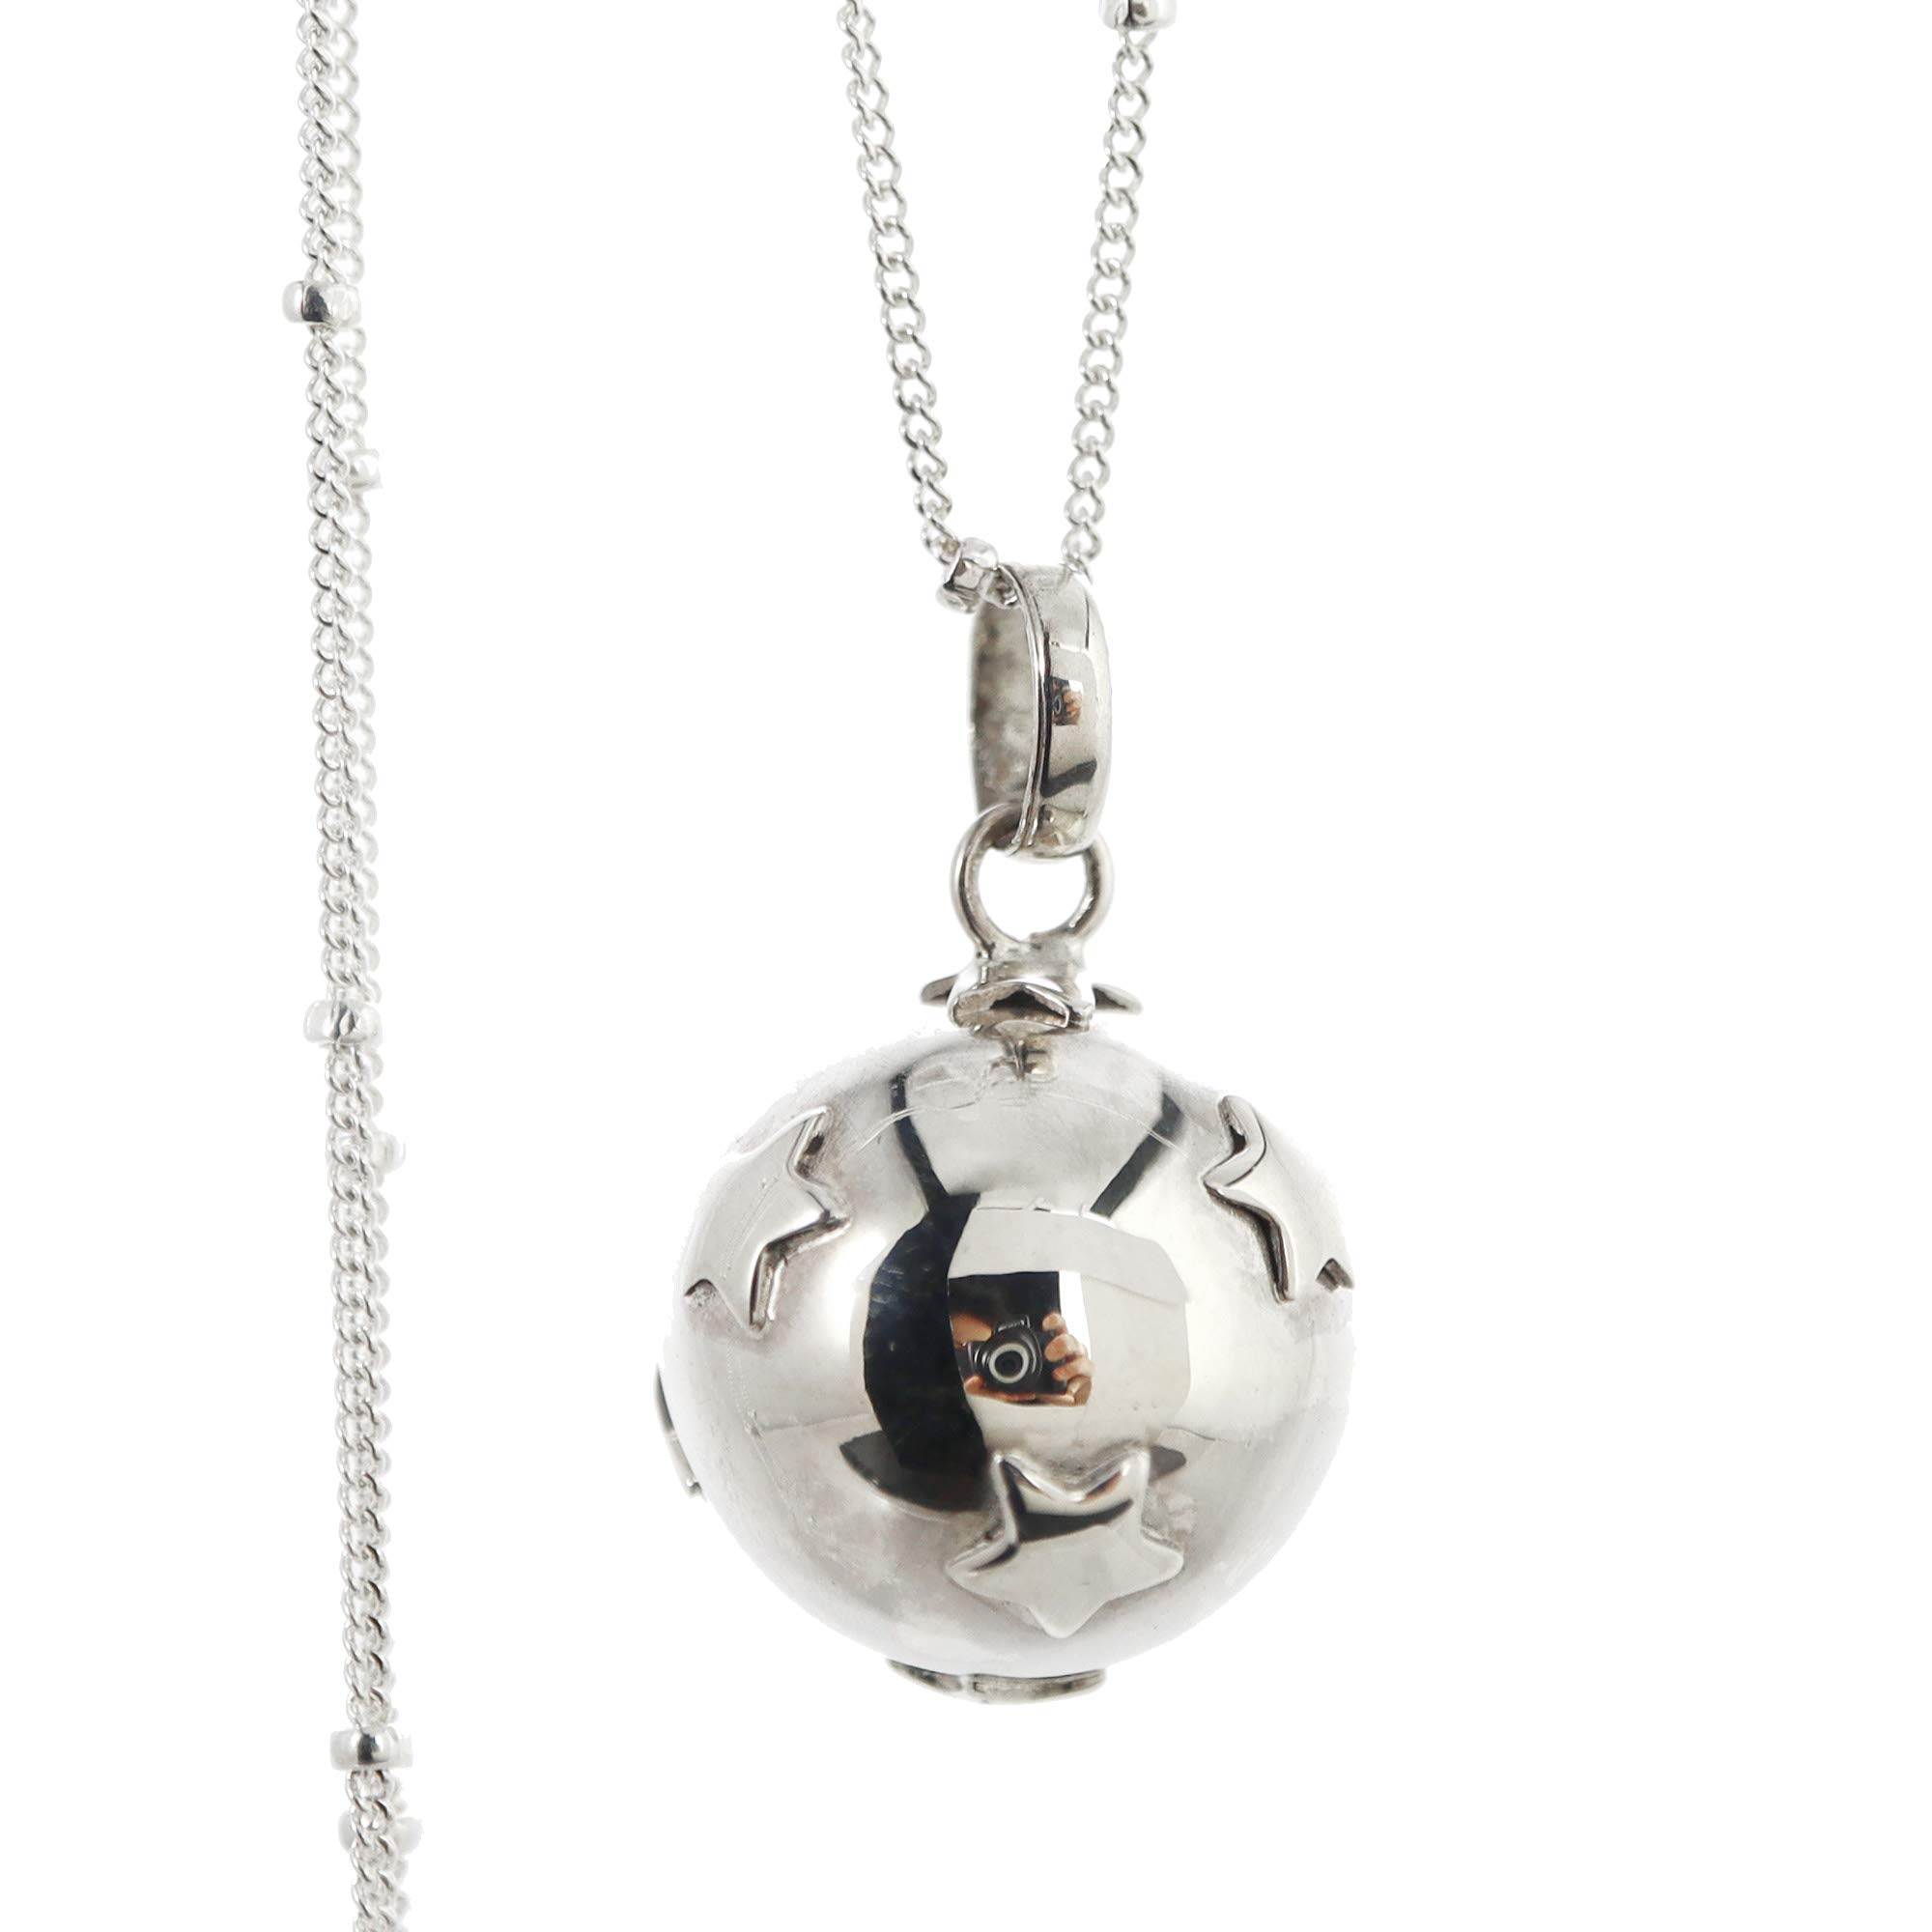 """16mm Little Stars Chime Sound Harmony Ball Bali Sterling Silver Pendant Necklace 30"""" Chain LS68"""